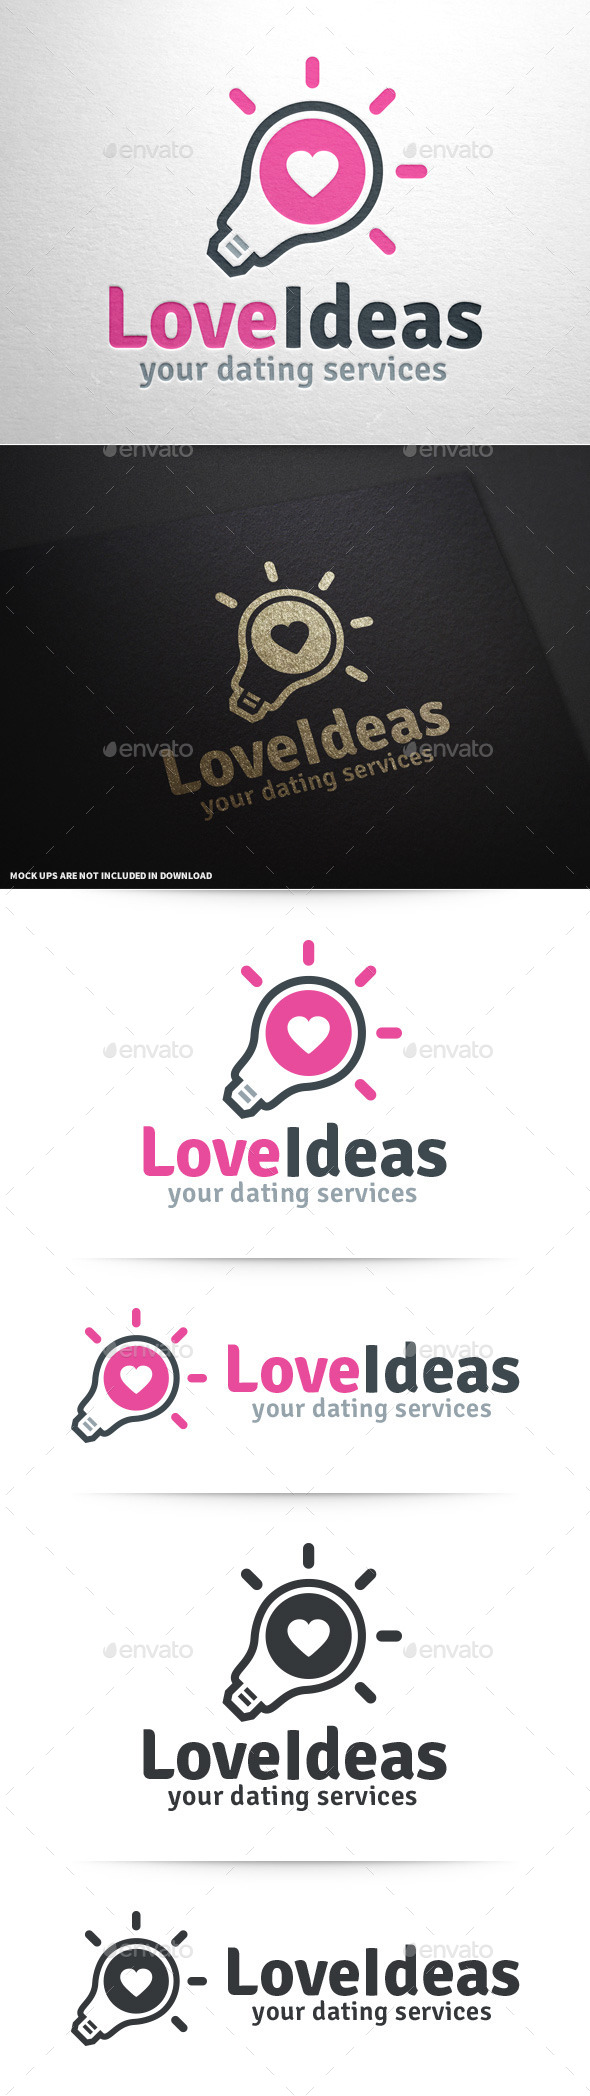 dating-site-logo-ideas